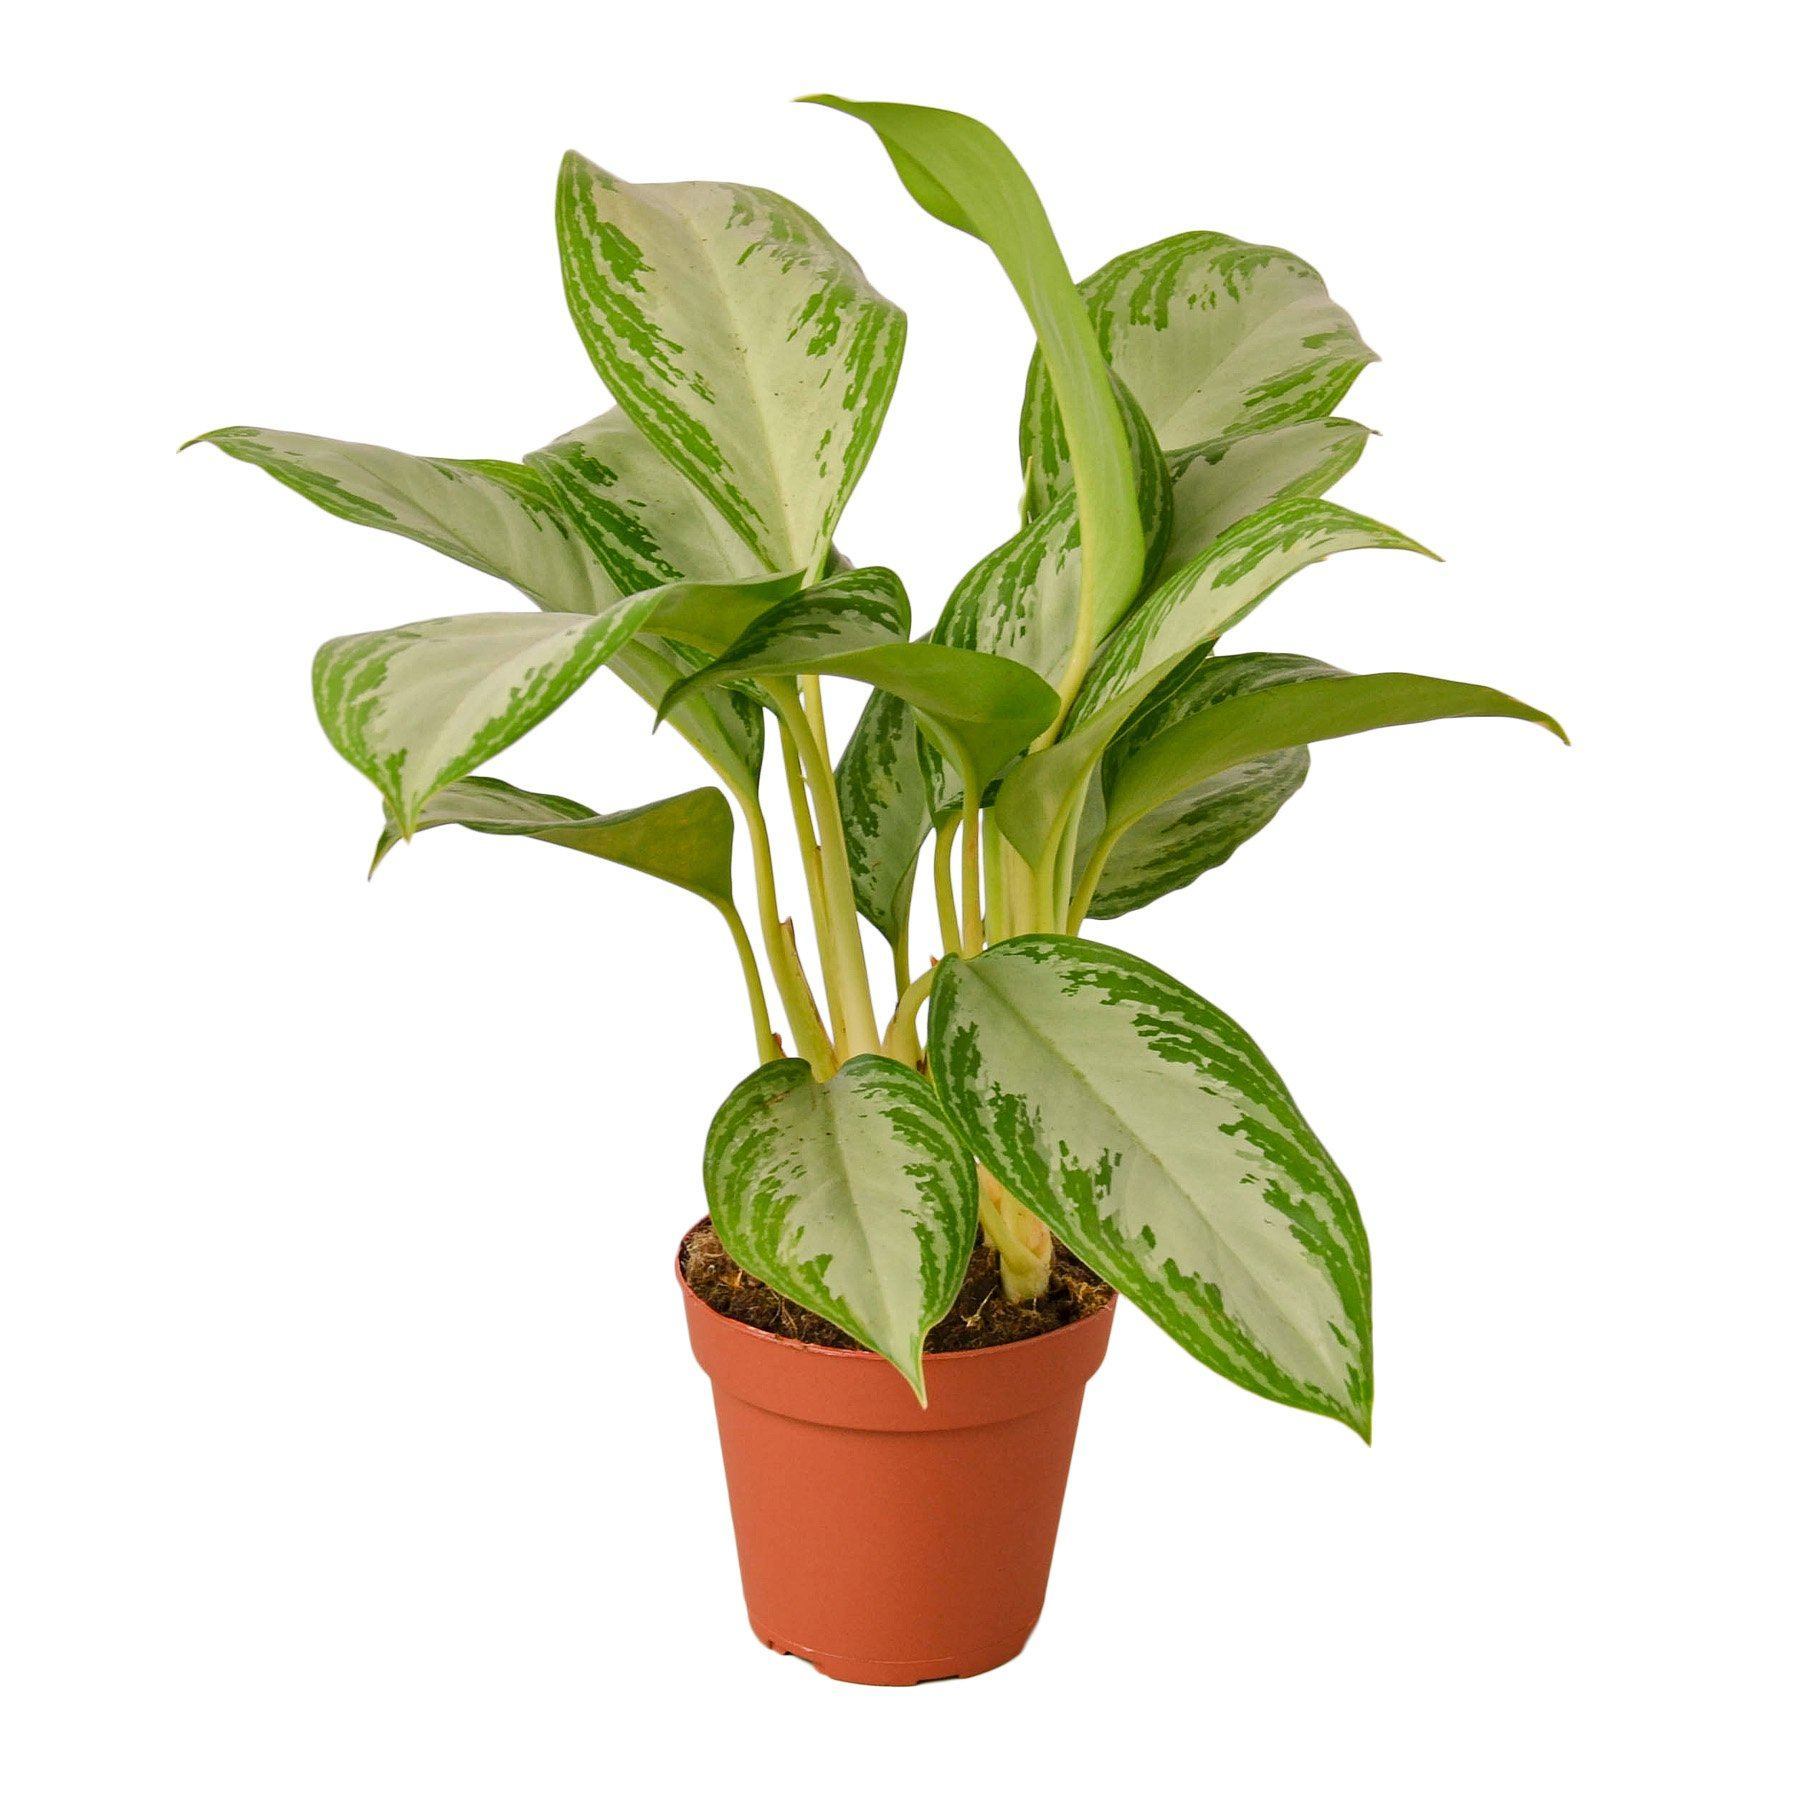 Chinese Evergreen 'Silver Bay' Indoor Houseplant-SproutSouth-Indoor Plants